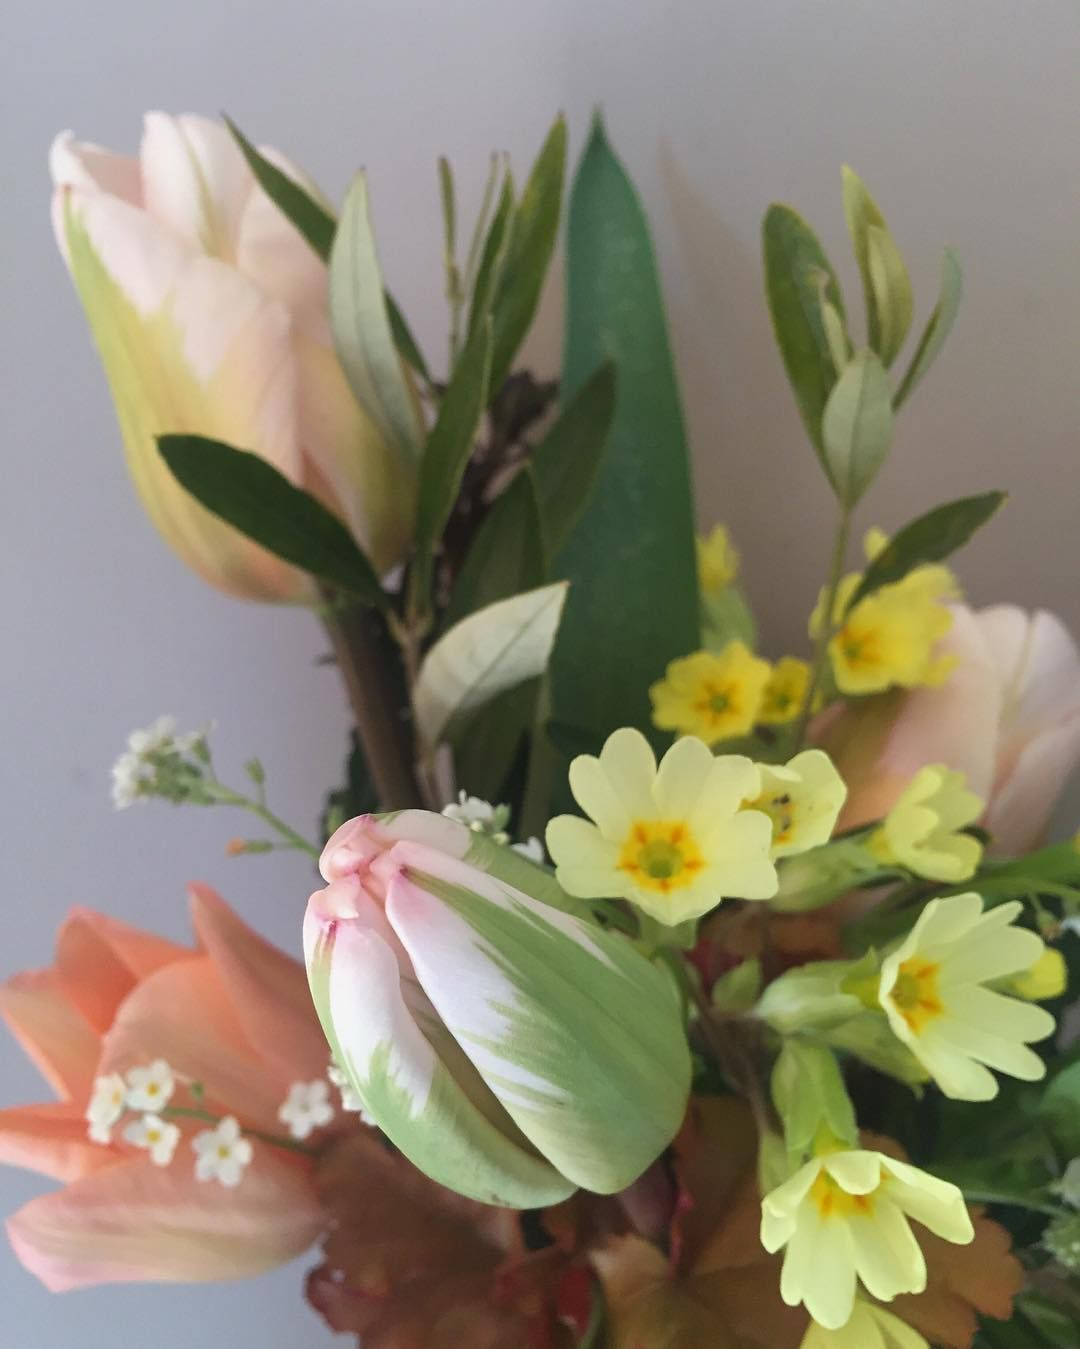 A posy of home grown flowers for the most important birthday this a posy of home grown flowers for the most important birthday this week for beautiful margot gray melia born on monday and who i got to meet yesterday izmirmasajfo